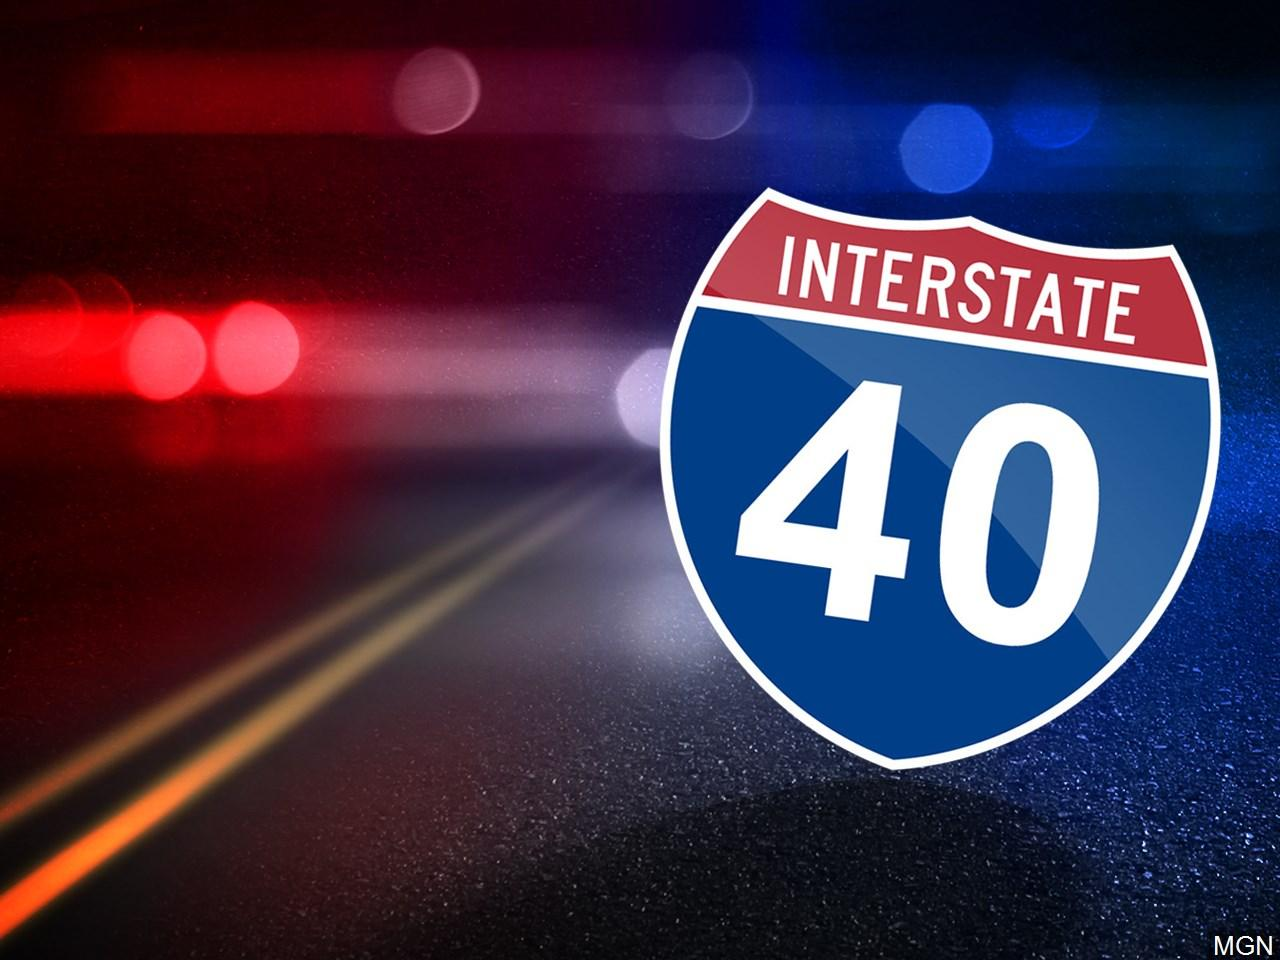 Interstate 40 is closed in Haywood County because of a slide. (Photo credit: MGN)